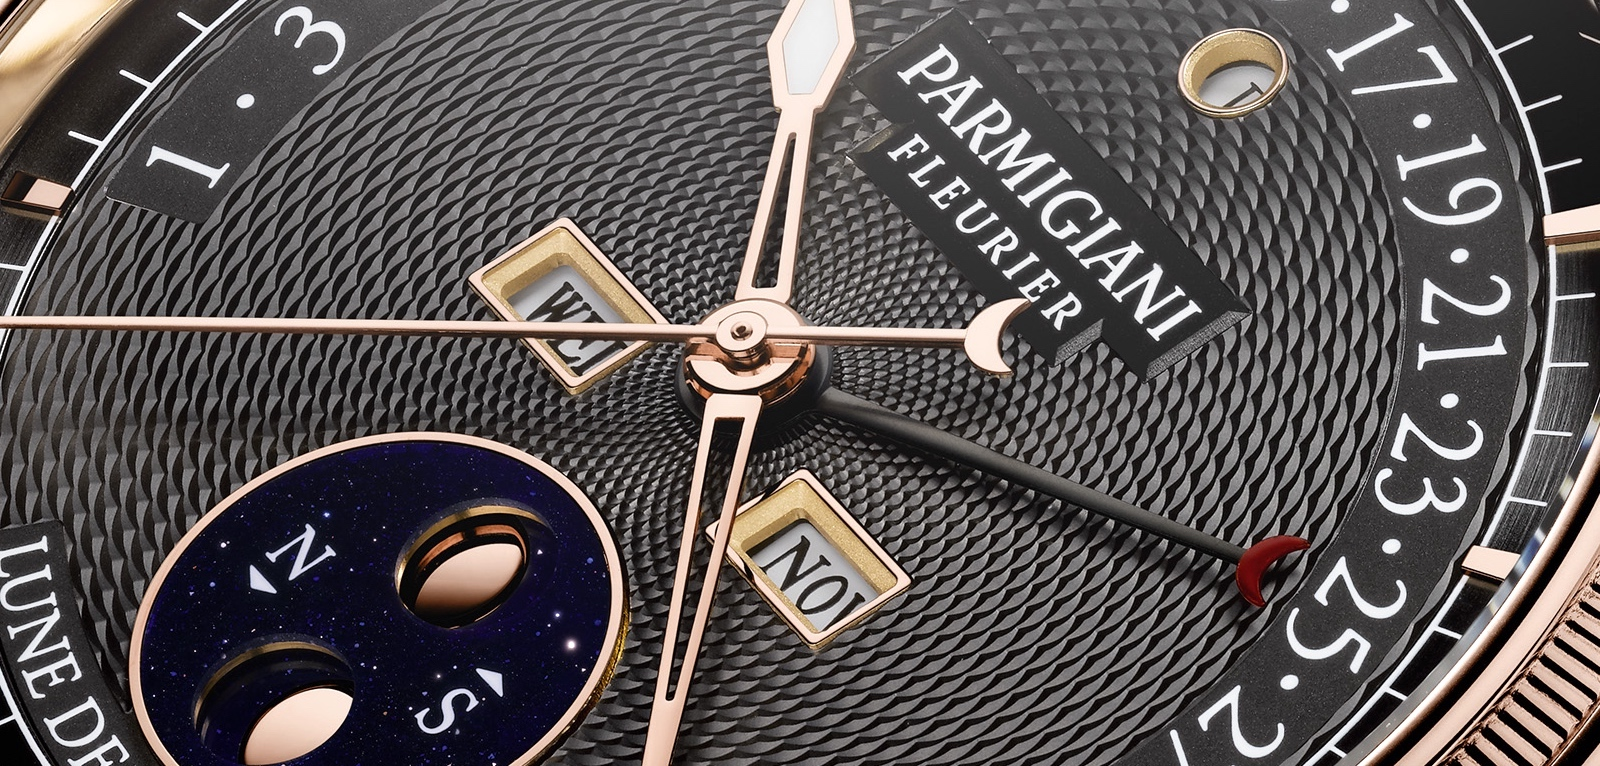 Parmigiani Fleurier Toric Collection SIHH 2019 Cover